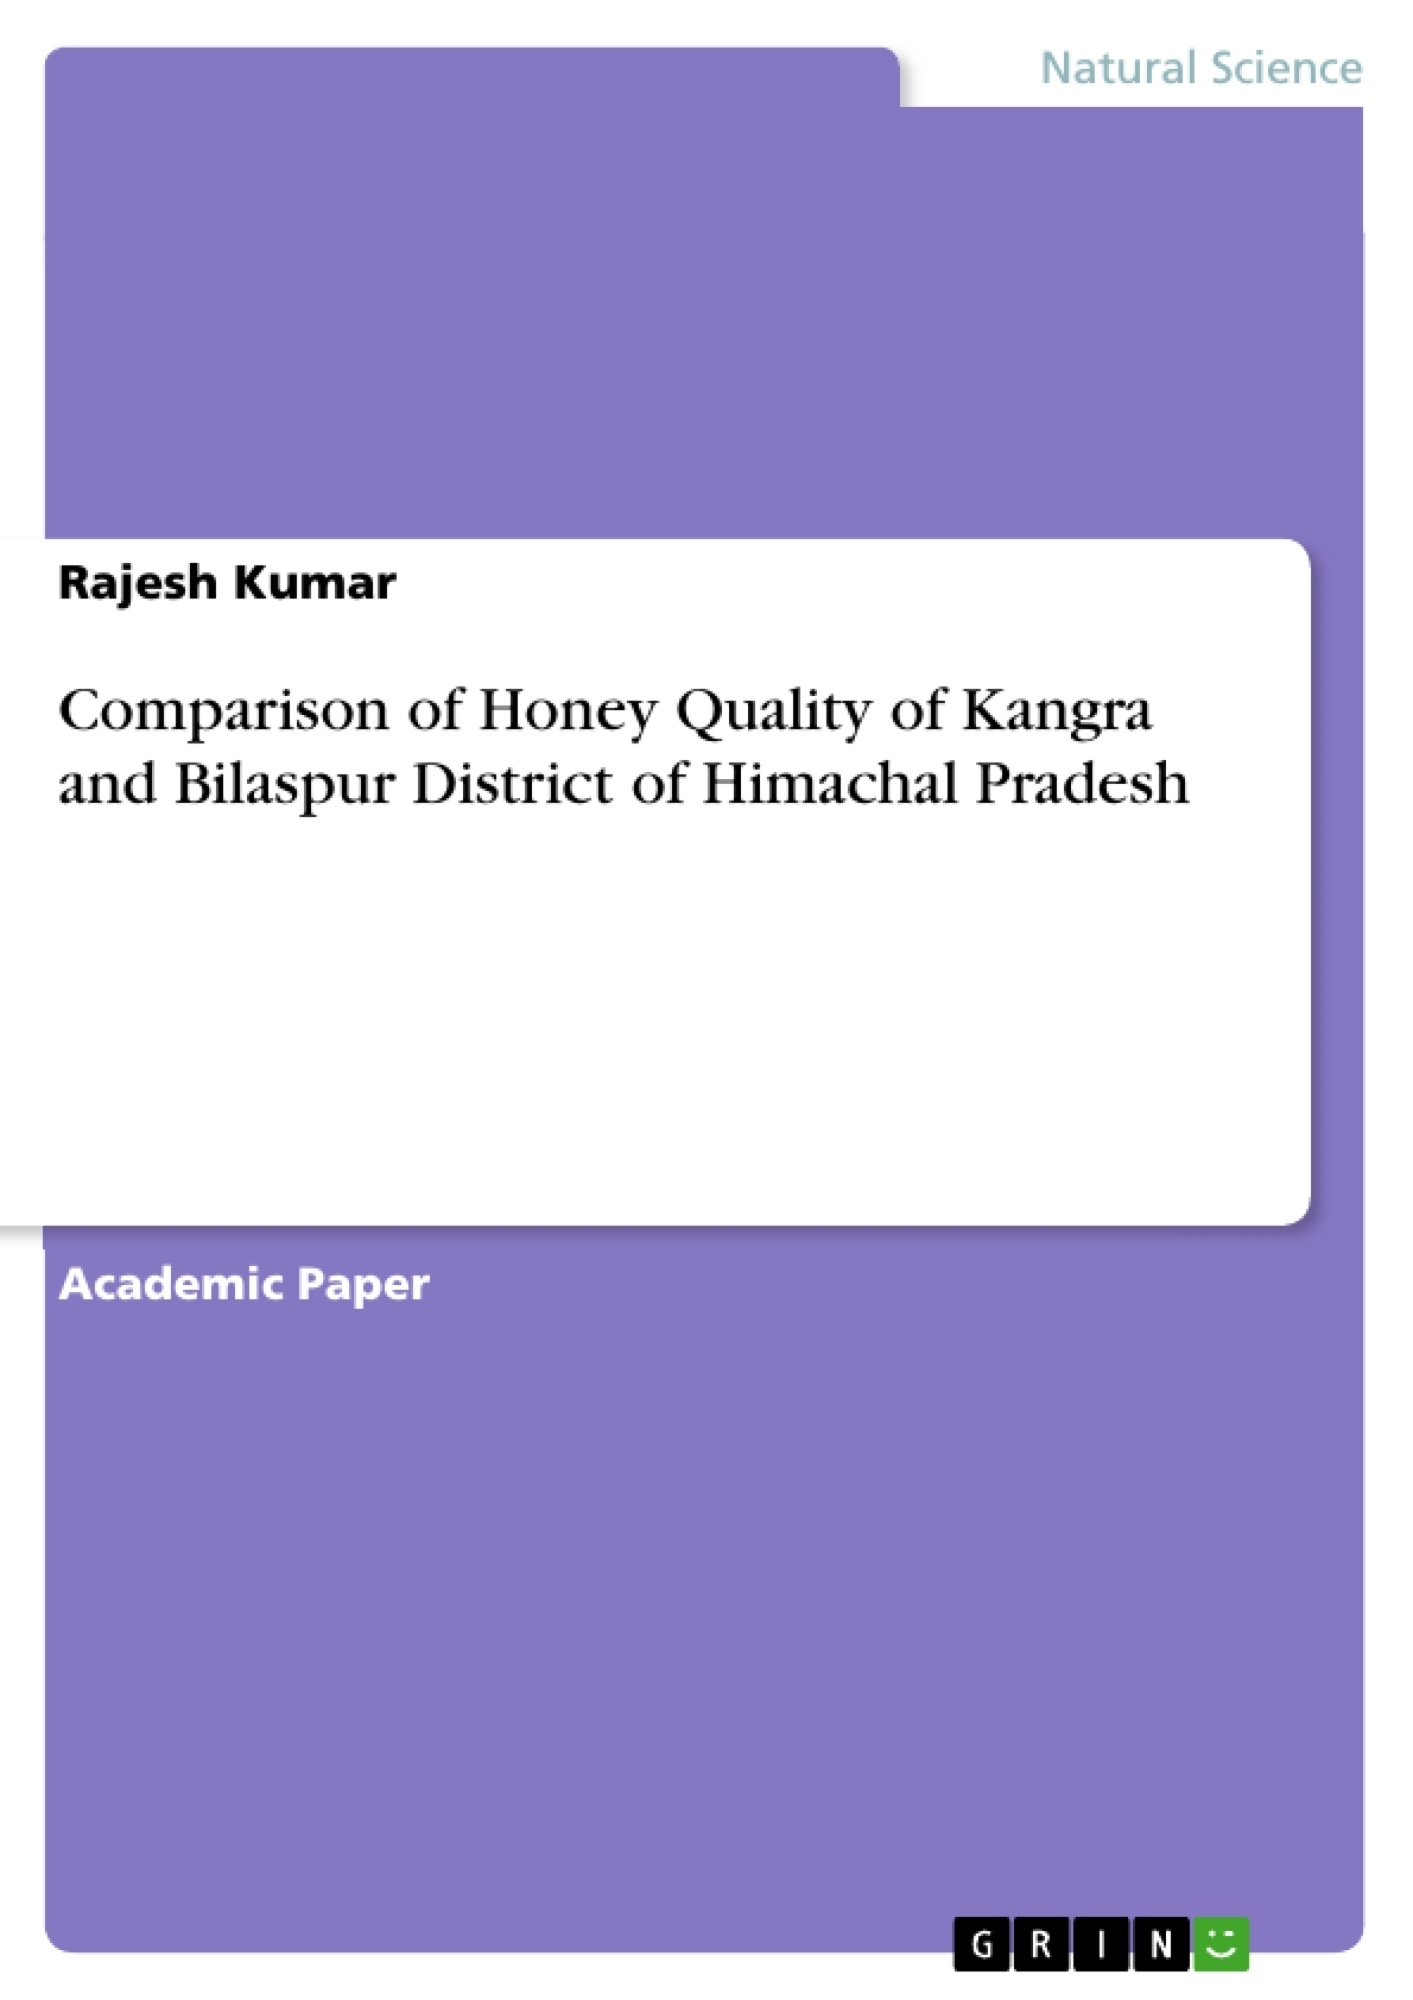 Title: Comparison of Honey Quality of Kangra and Bilaspur District of Himachal Pradesh